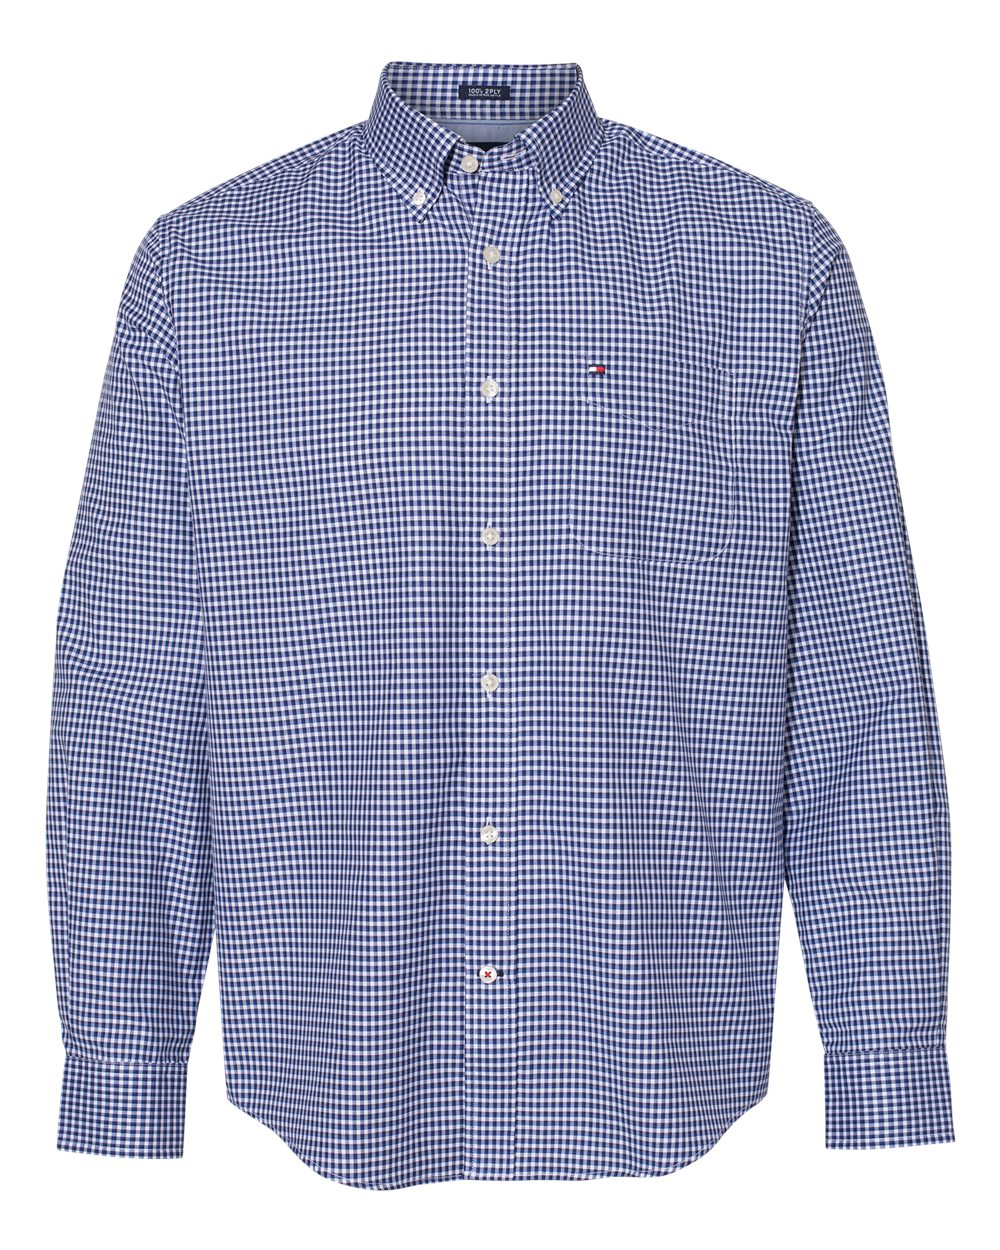 Tommy Hilfiger 13H1863 - 100s Two-Ply Gingham Shirt